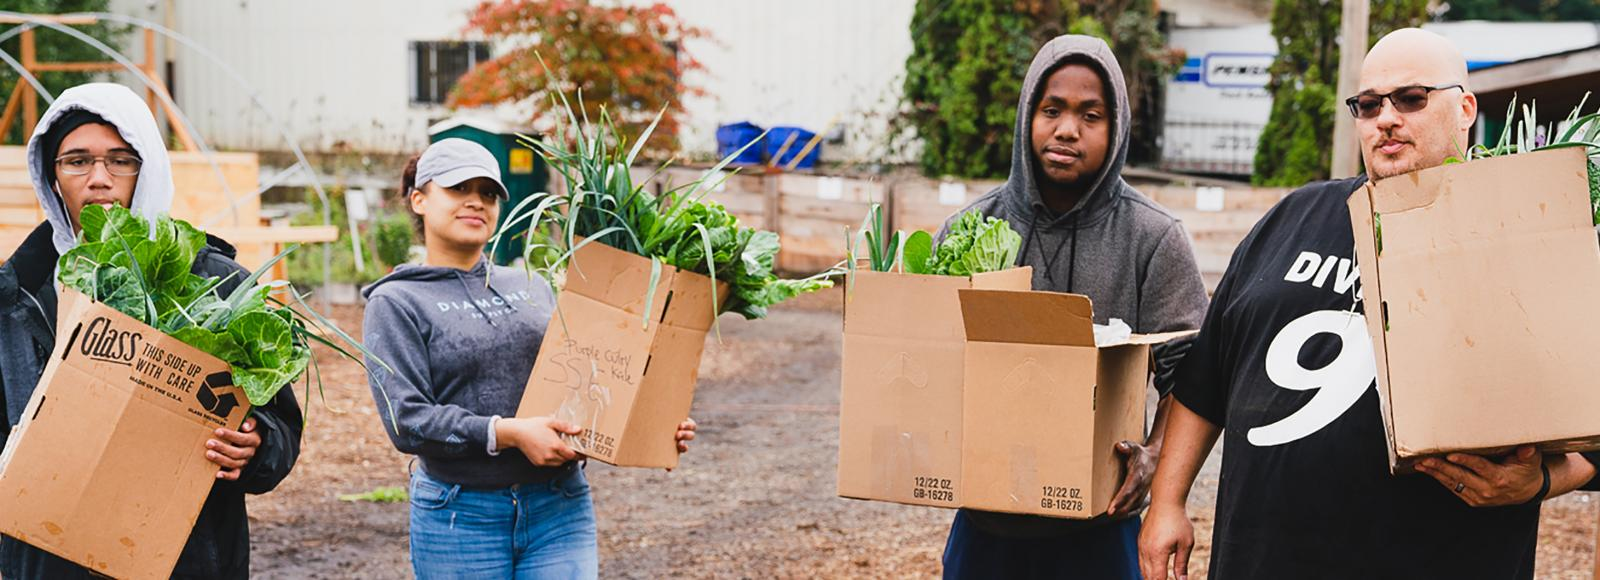 Three young people and their instructor hold cardboard boxes containing fresh green produce